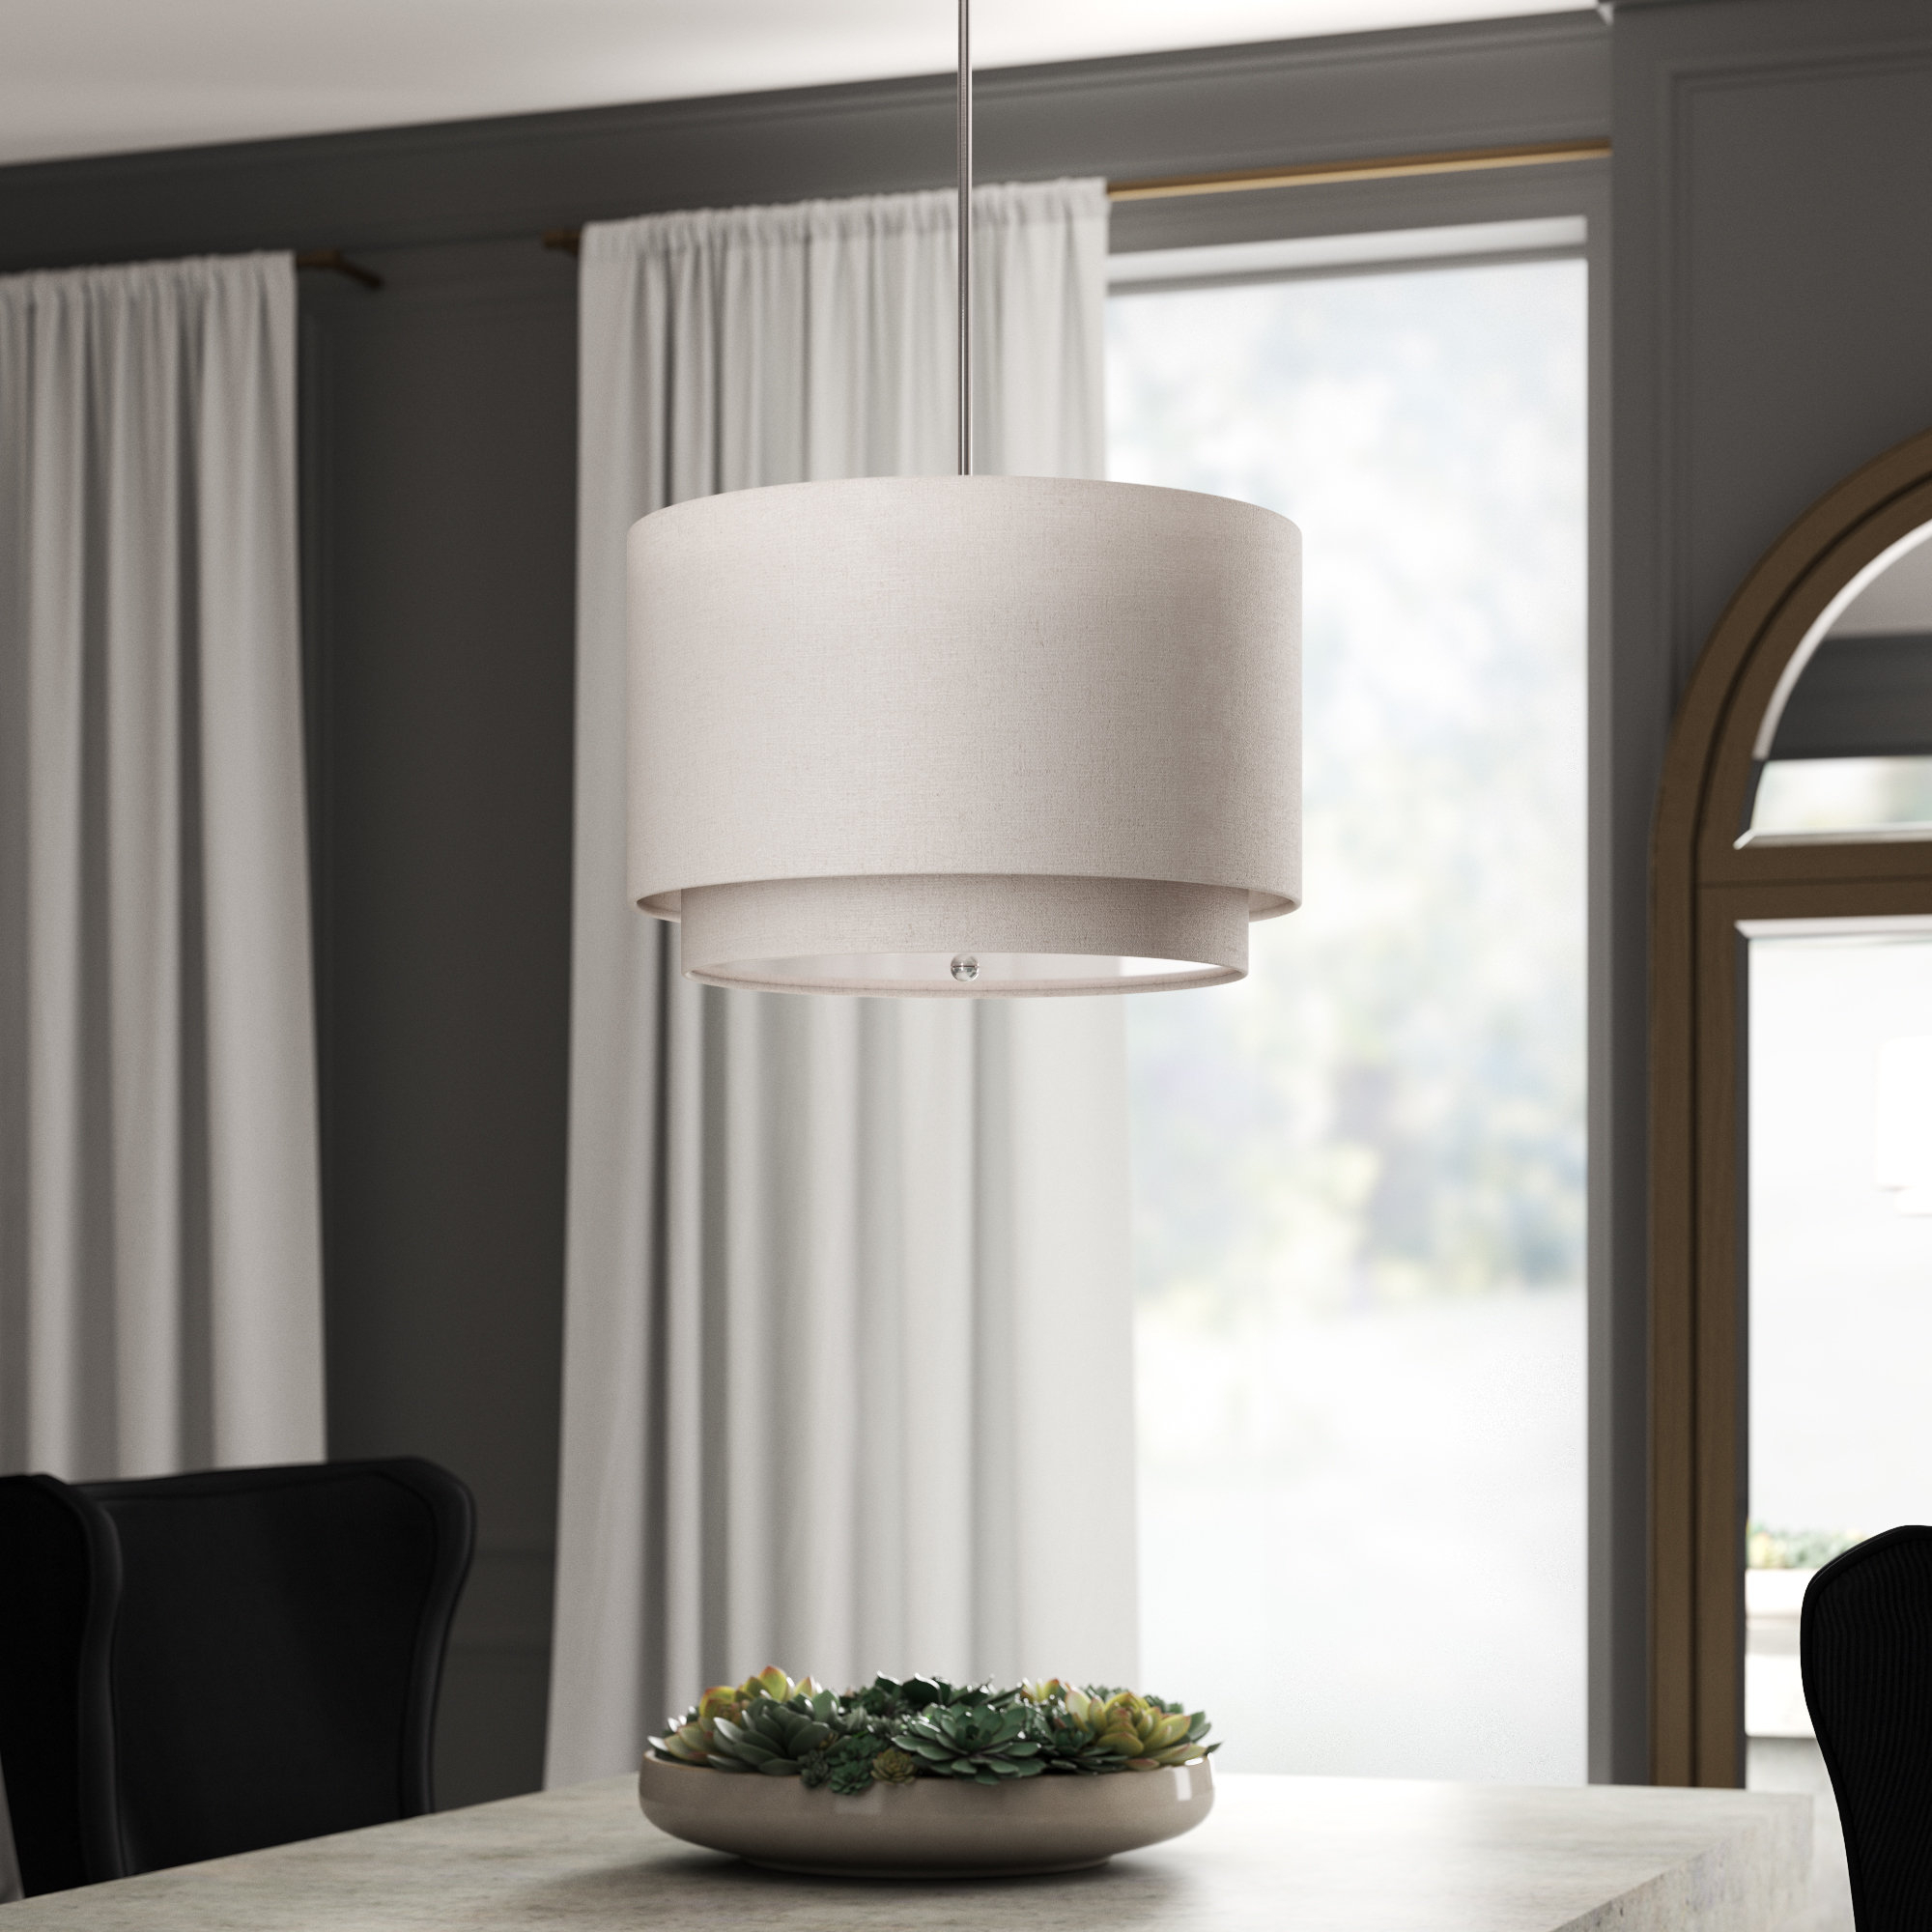 Burslem 3 Light Single Drum Pendants With Fashionable Goodlow 3 Light Drum Pendant (View 9 of 20)